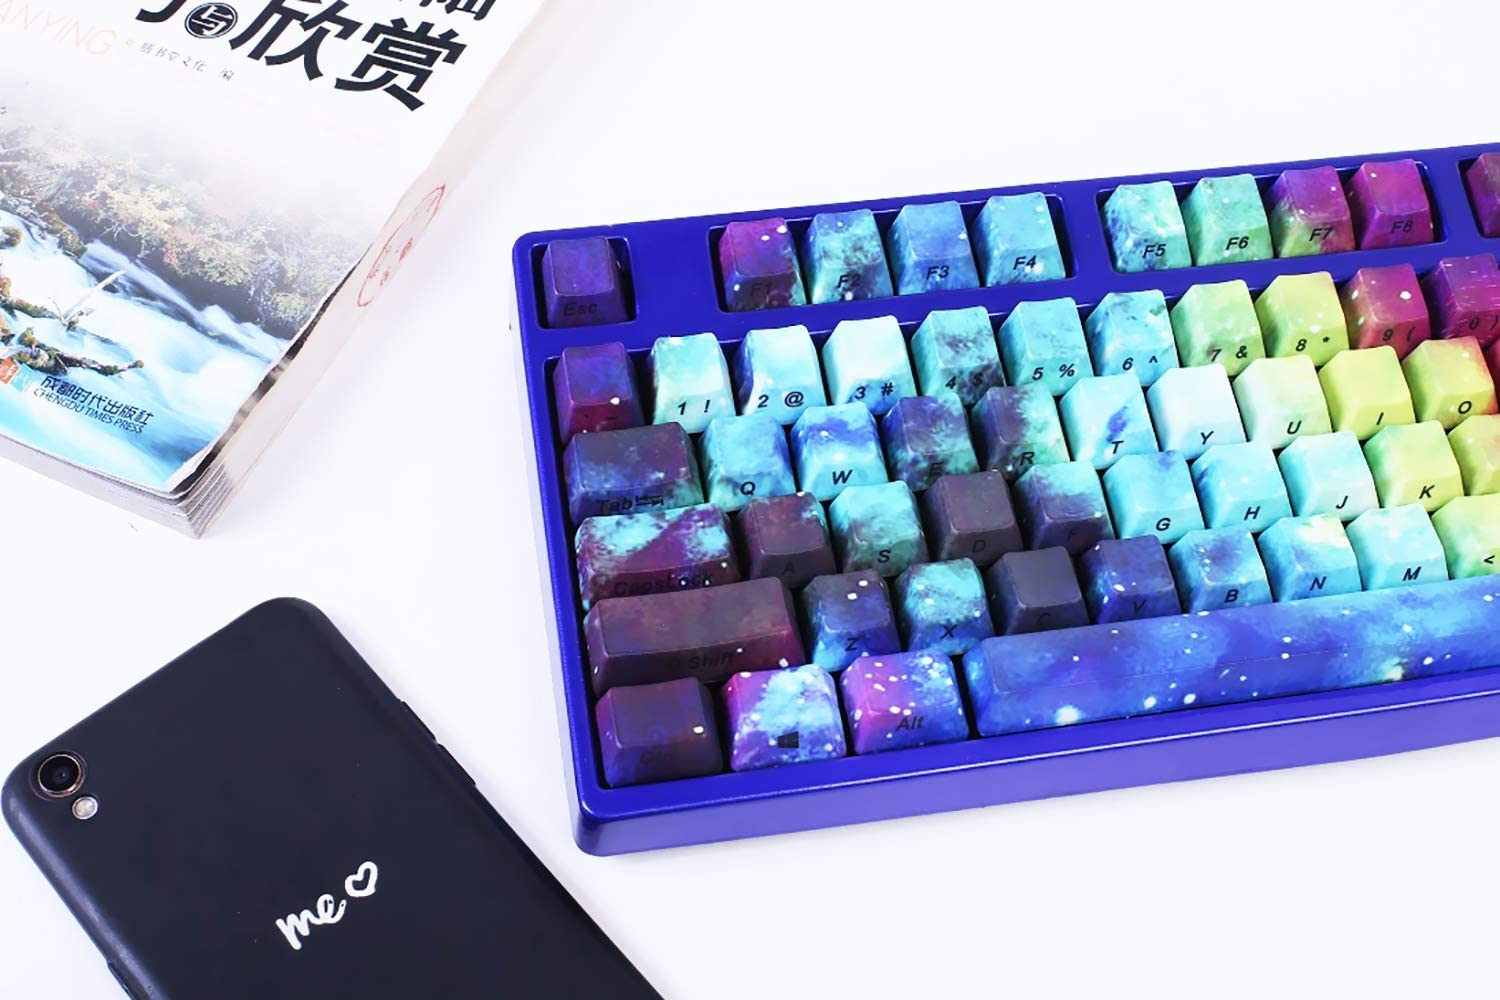 Cherry MX Switch Suitable for Mechanical Keyboard OEM Star Theme Customizable Keycaps PBT Keycaps 104-Key